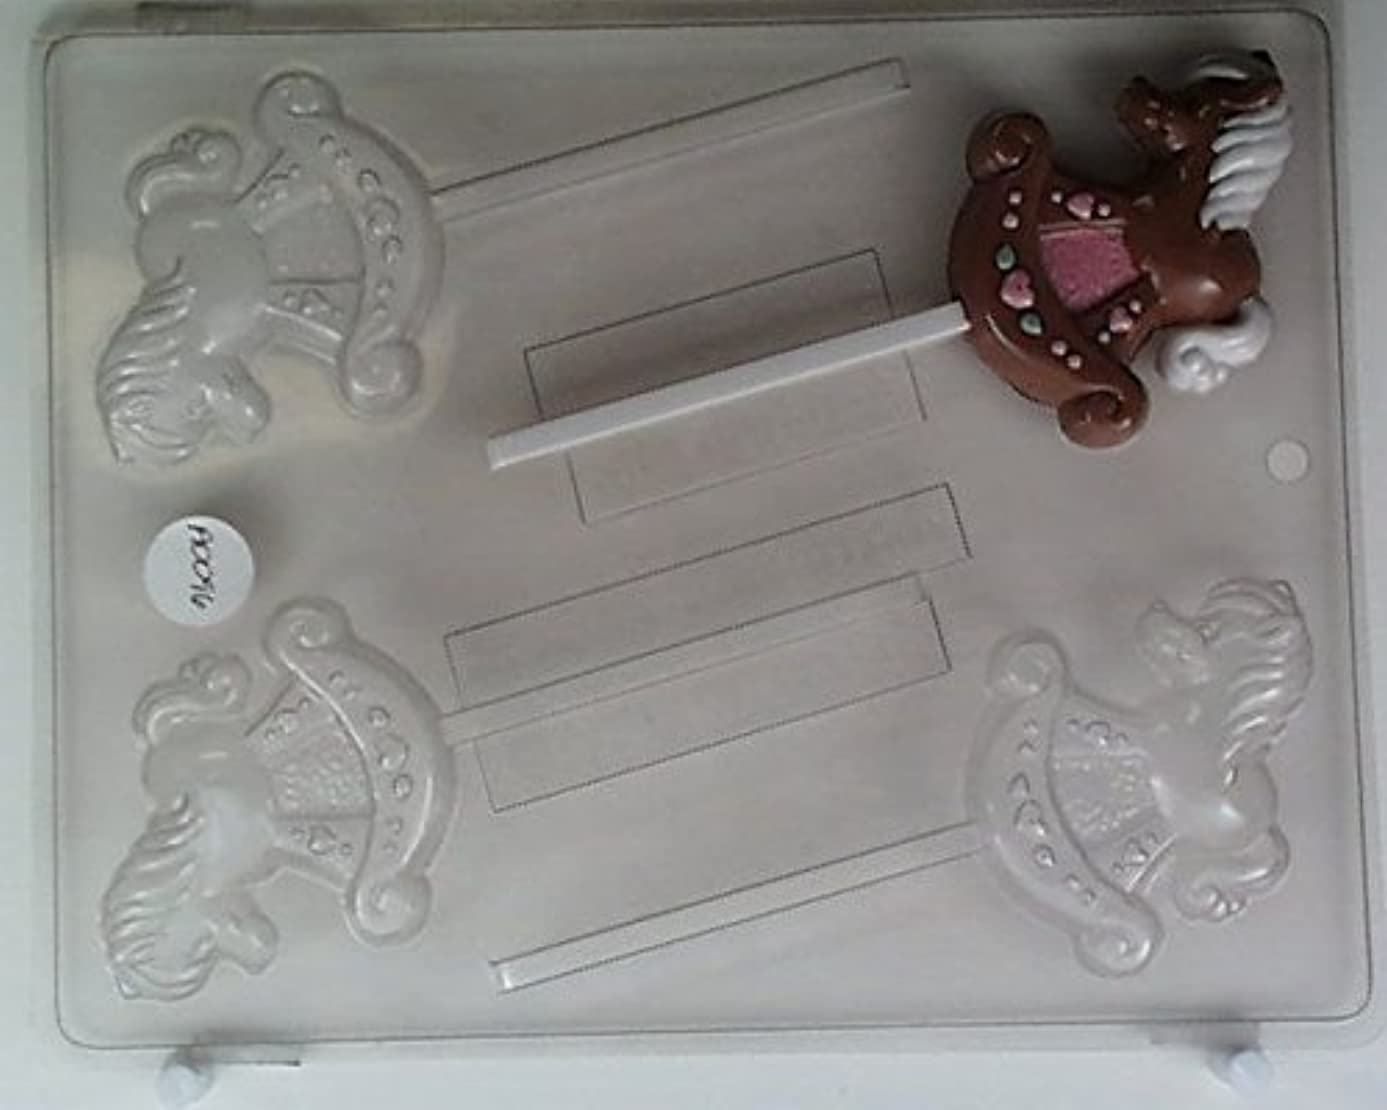 Rocking horse, decorated & cute AO096 All Occasion Chocolate Candy Mold